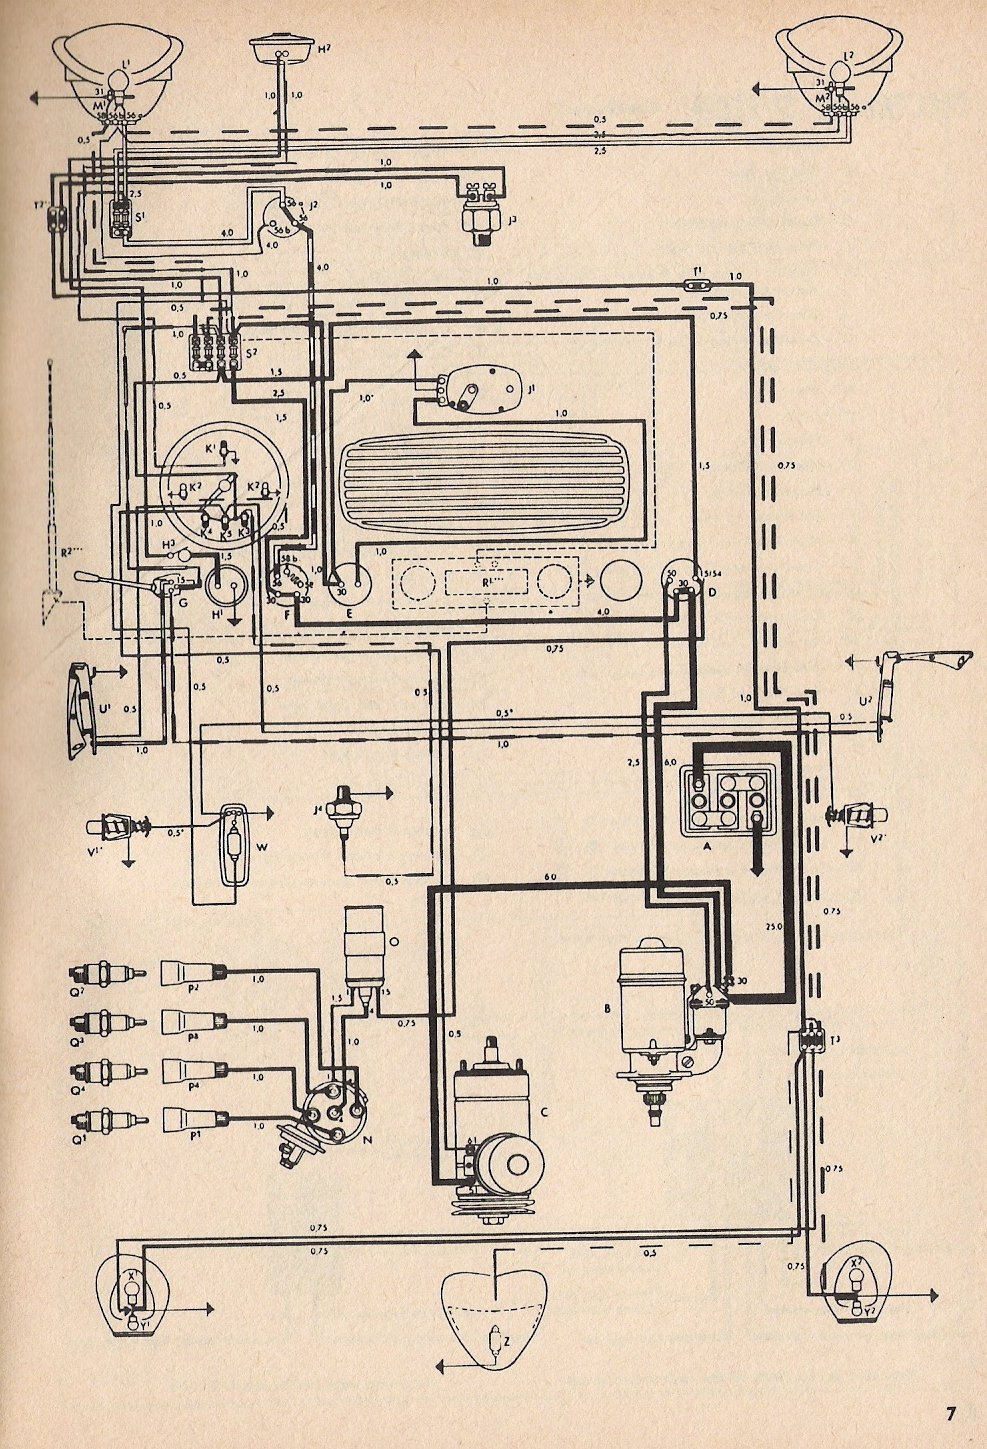 65 vw bug wiring harness wiring diagram thesamba com type 1 wiring diagrams rh thesamba com 1965 vw bug wiring harness vw bug publicscrutiny Gallery